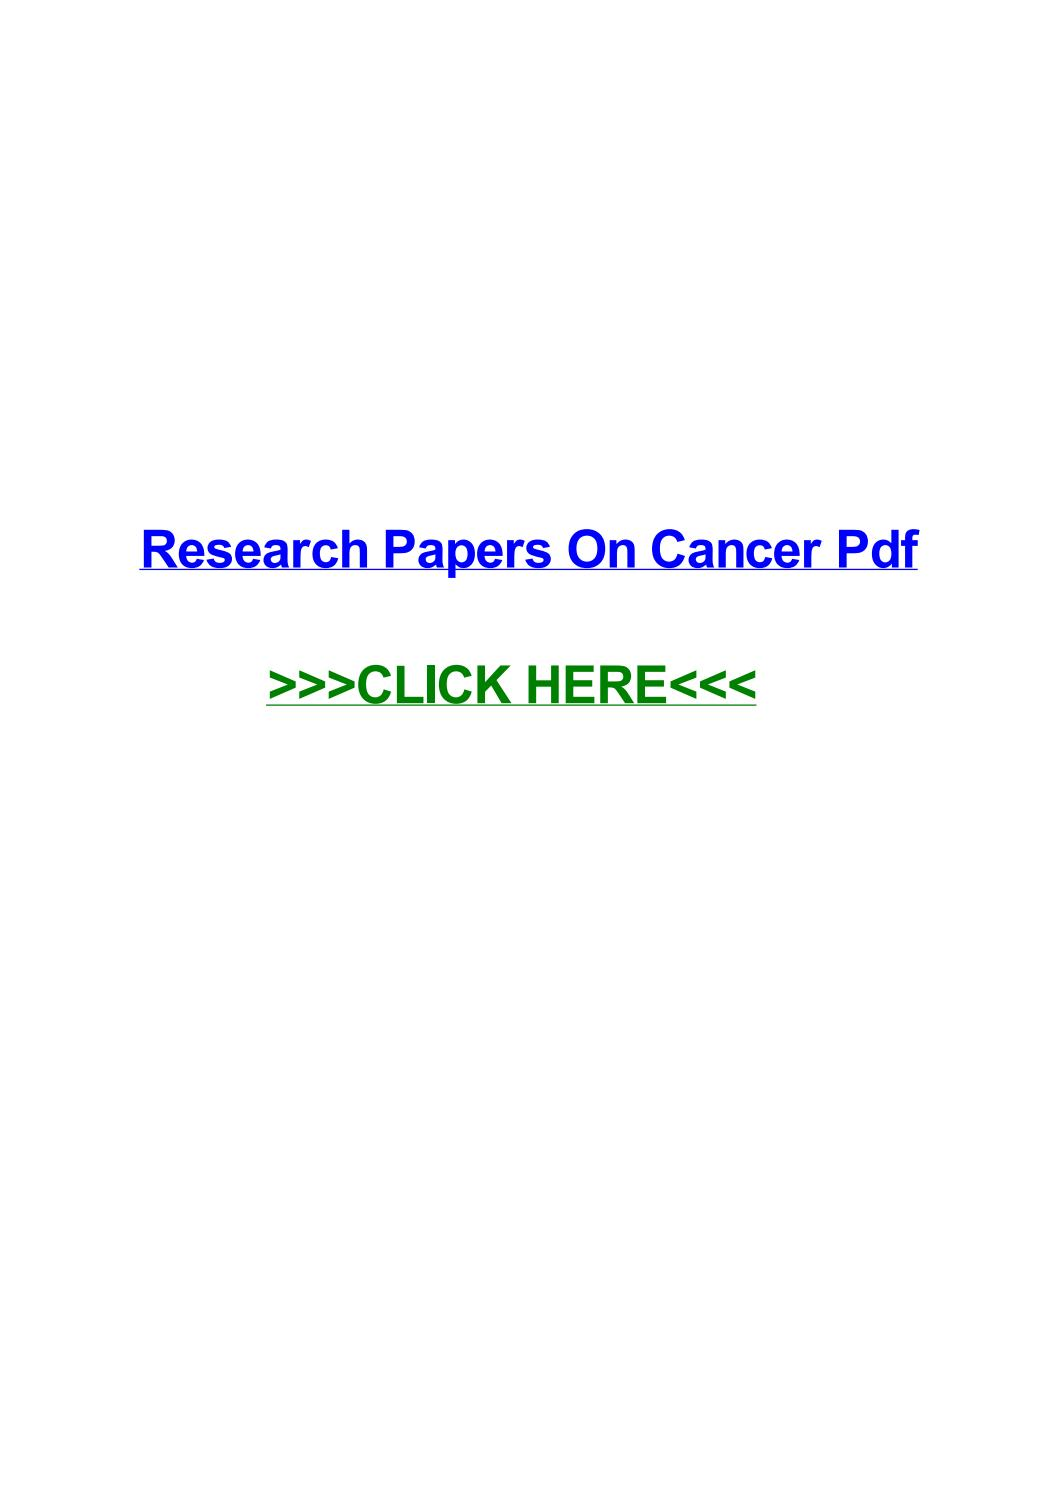 010 Research Paper Page 1 Cancer Papers Fascinating Pdf Lung Colon Skin Full